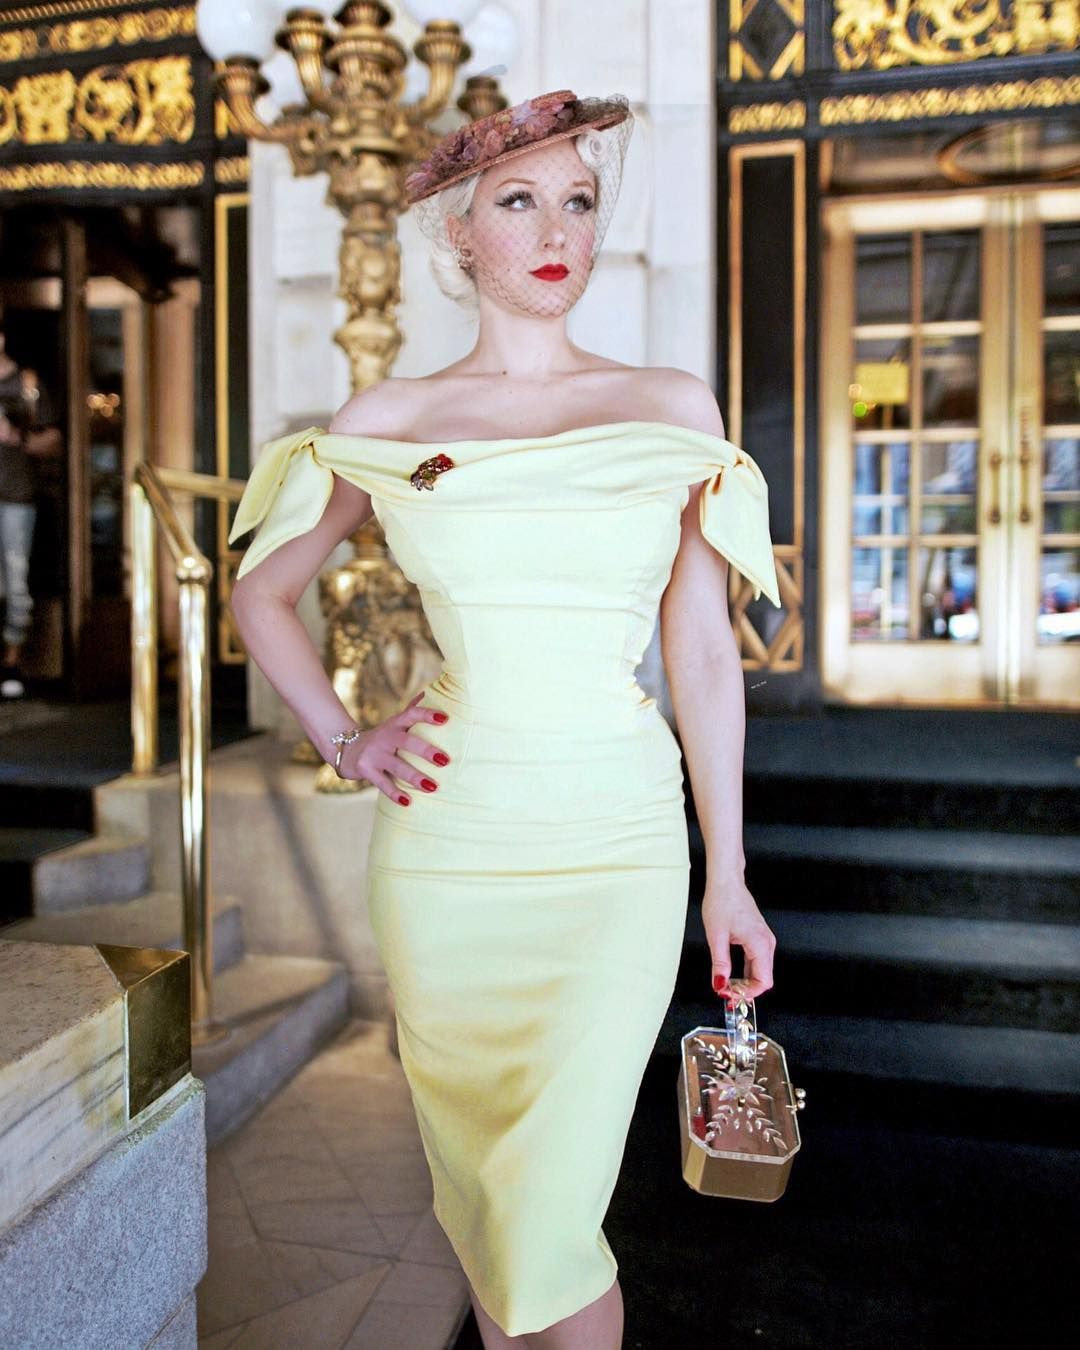 2681779f0cb5 Rachel Ann Jensen looks iconic wearing her Tilly Off The Shoulder Bow  Pencil Dress in lemon while out for lunch in New York. #vintage #style  #fashion #retro ...